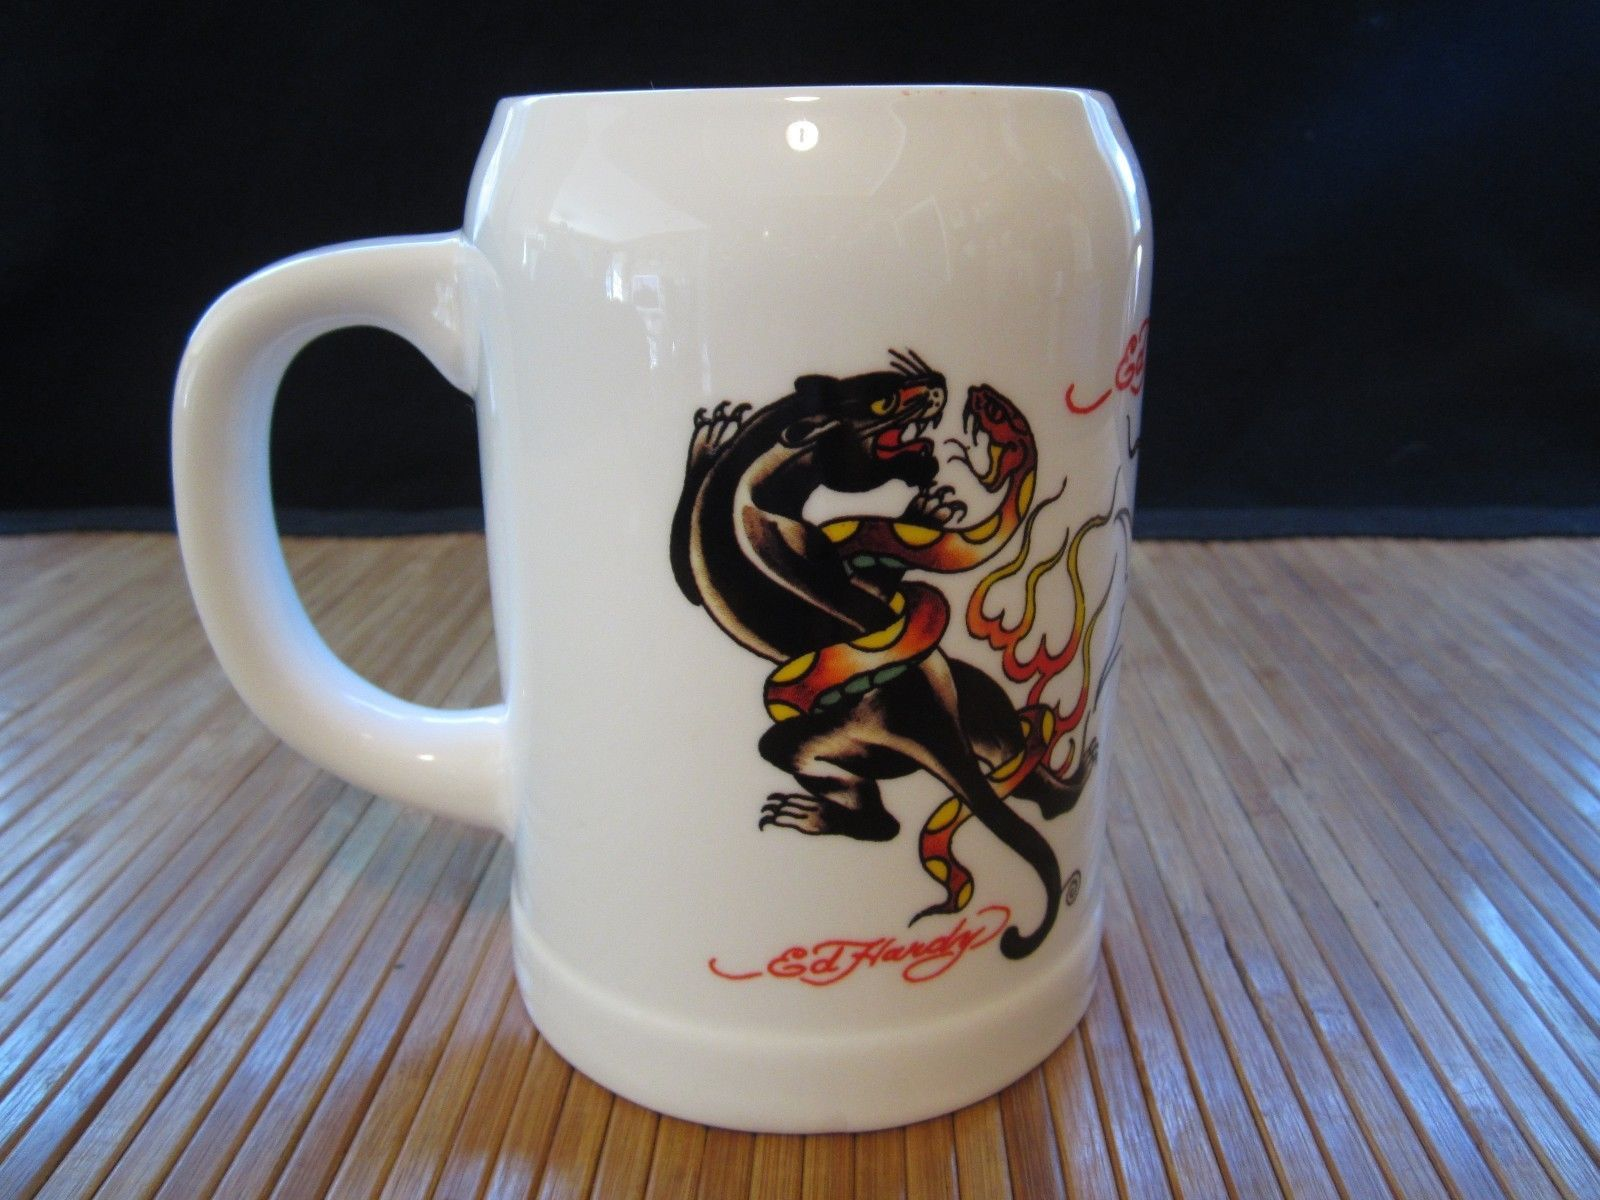 ed hardy brew beer stein coffee mug tea cup black panther snakes tattoo art other. Black Bedroom Furniture Sets. Home Design Ideas